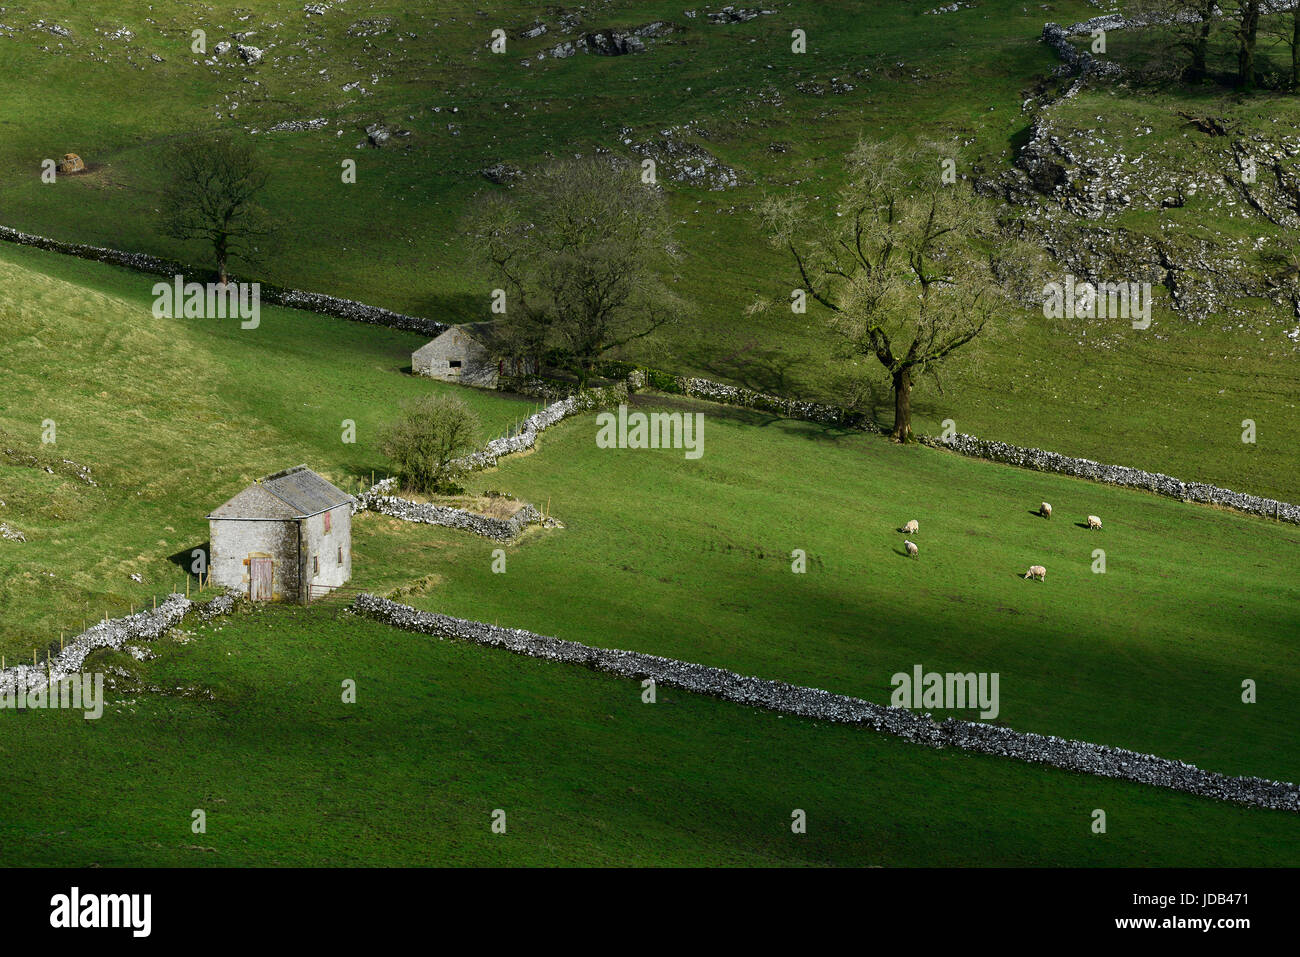 Old Barns in Dowel Dale - Stock Image